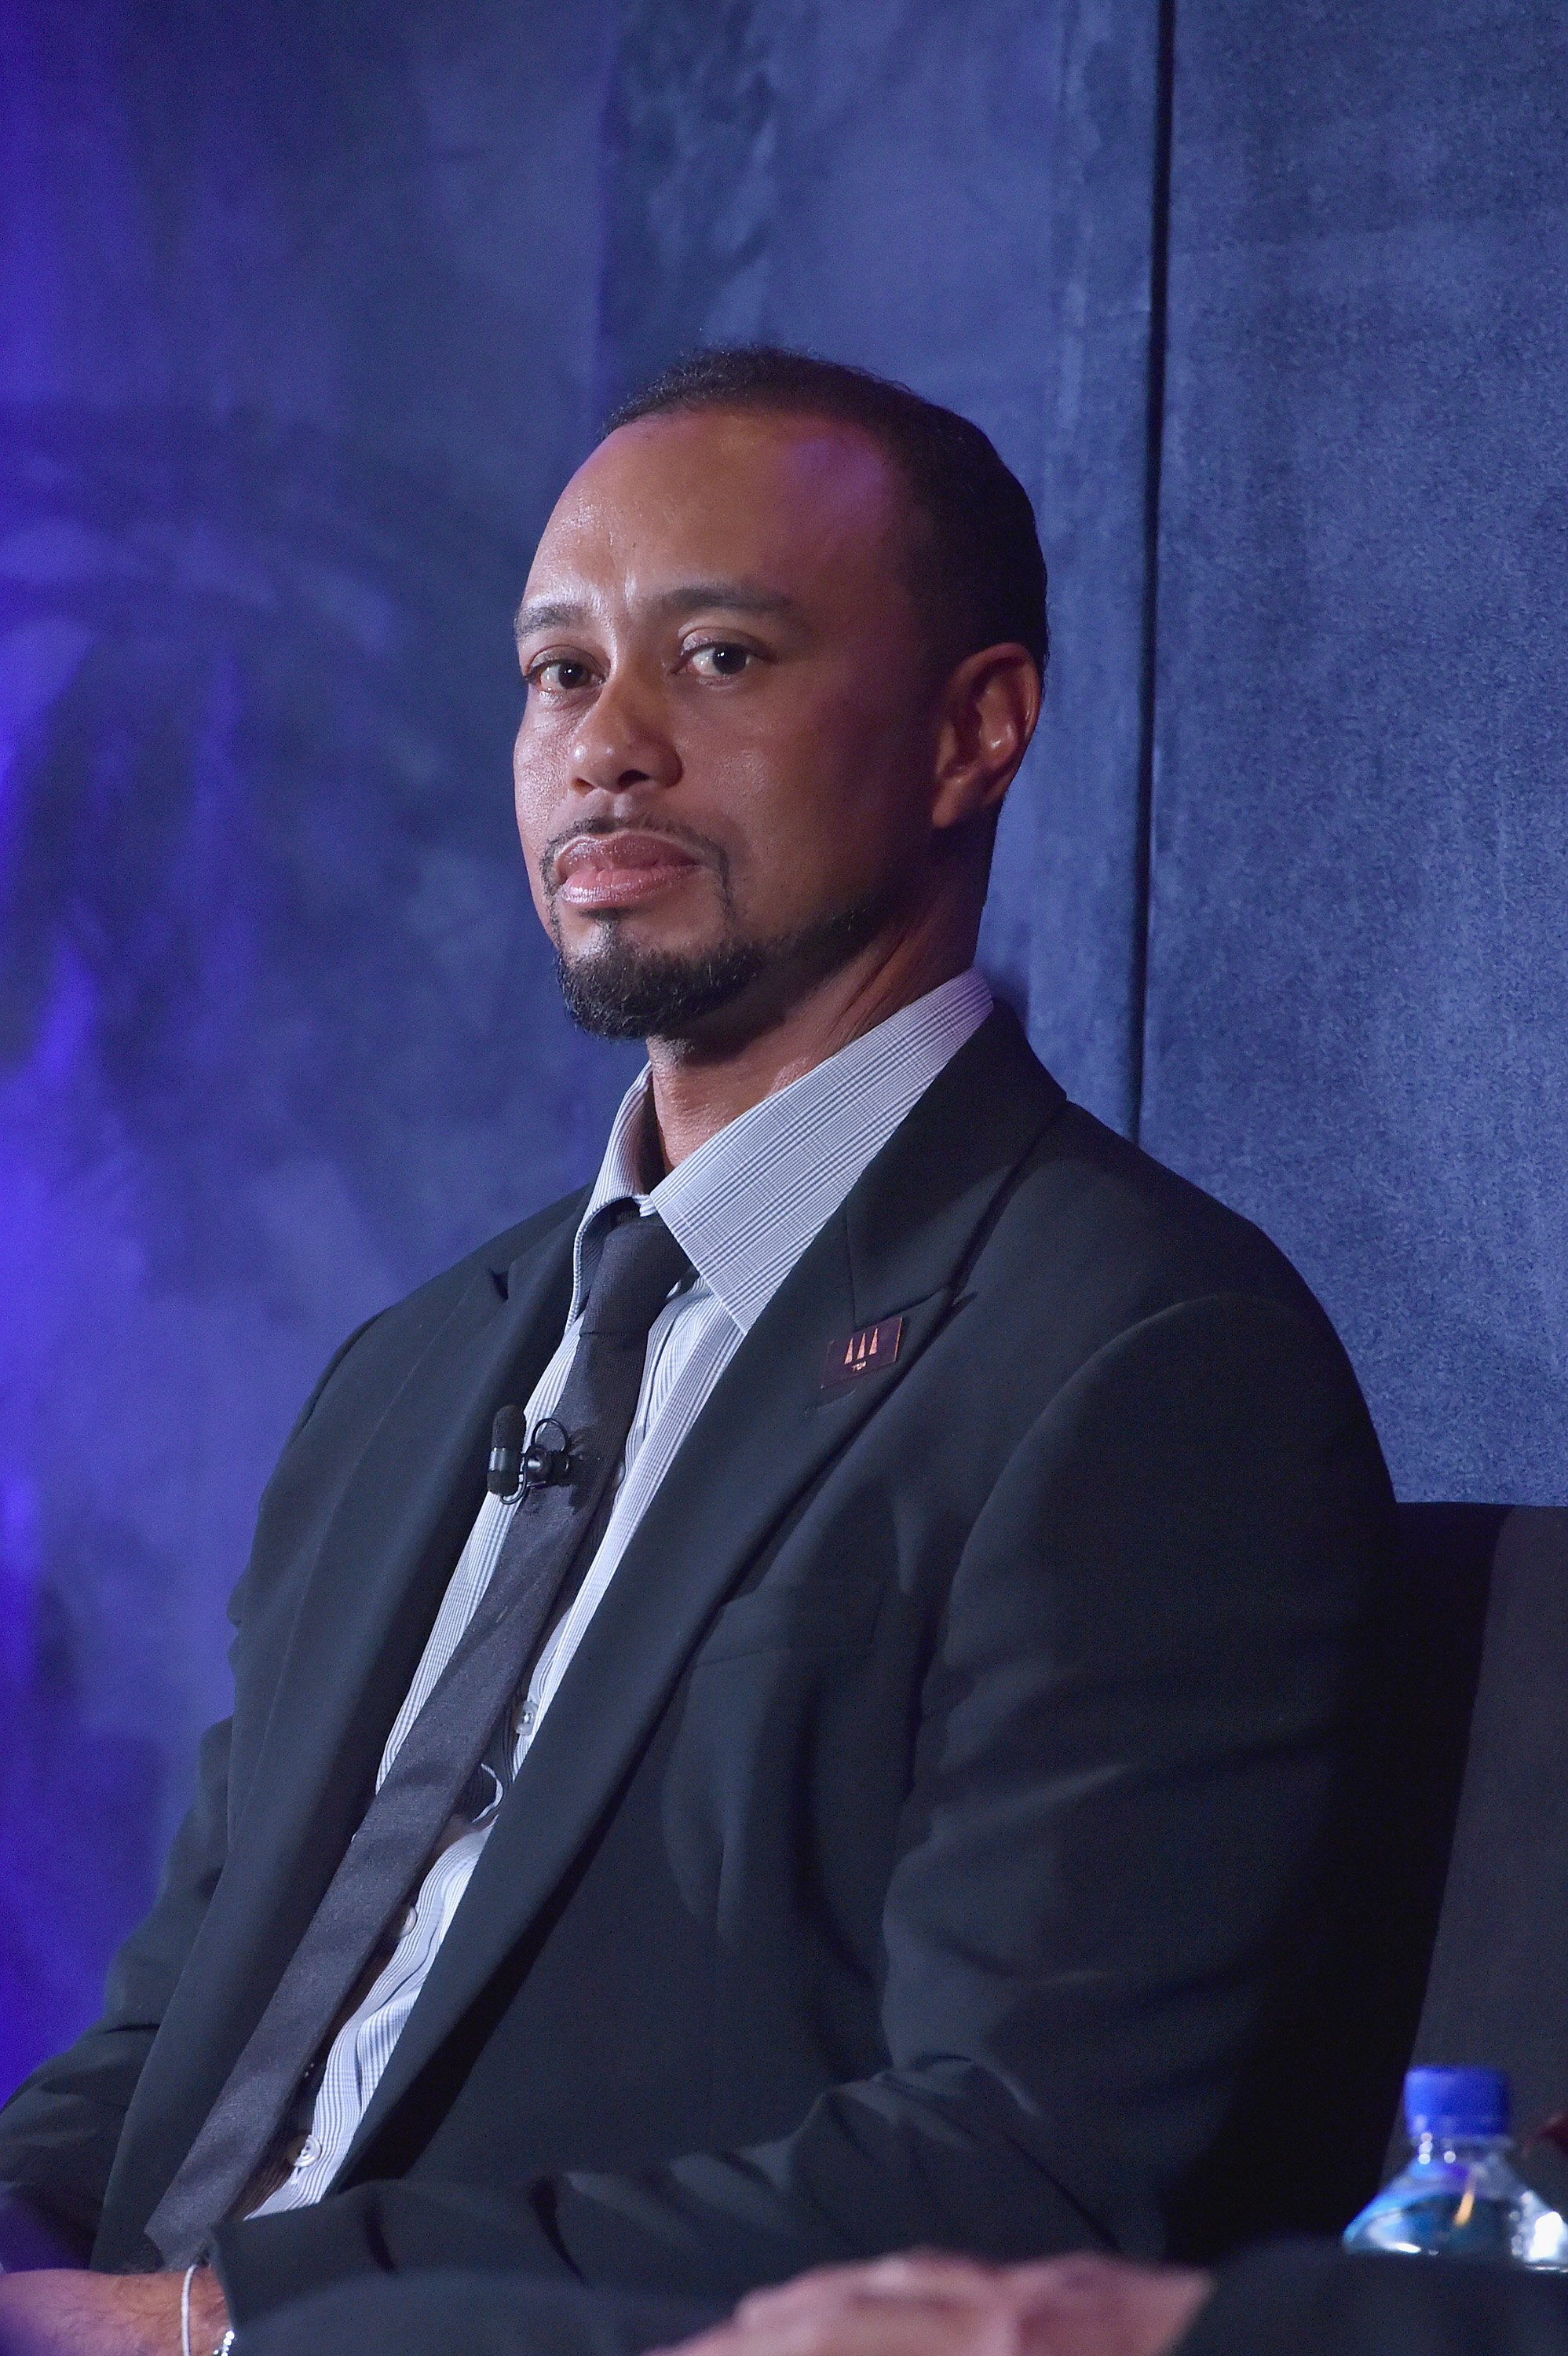 Tiger Woods speaks onstage during the Tiger Woods Foundation's 20th Anniversary Celebration. | Photo: GettyImages